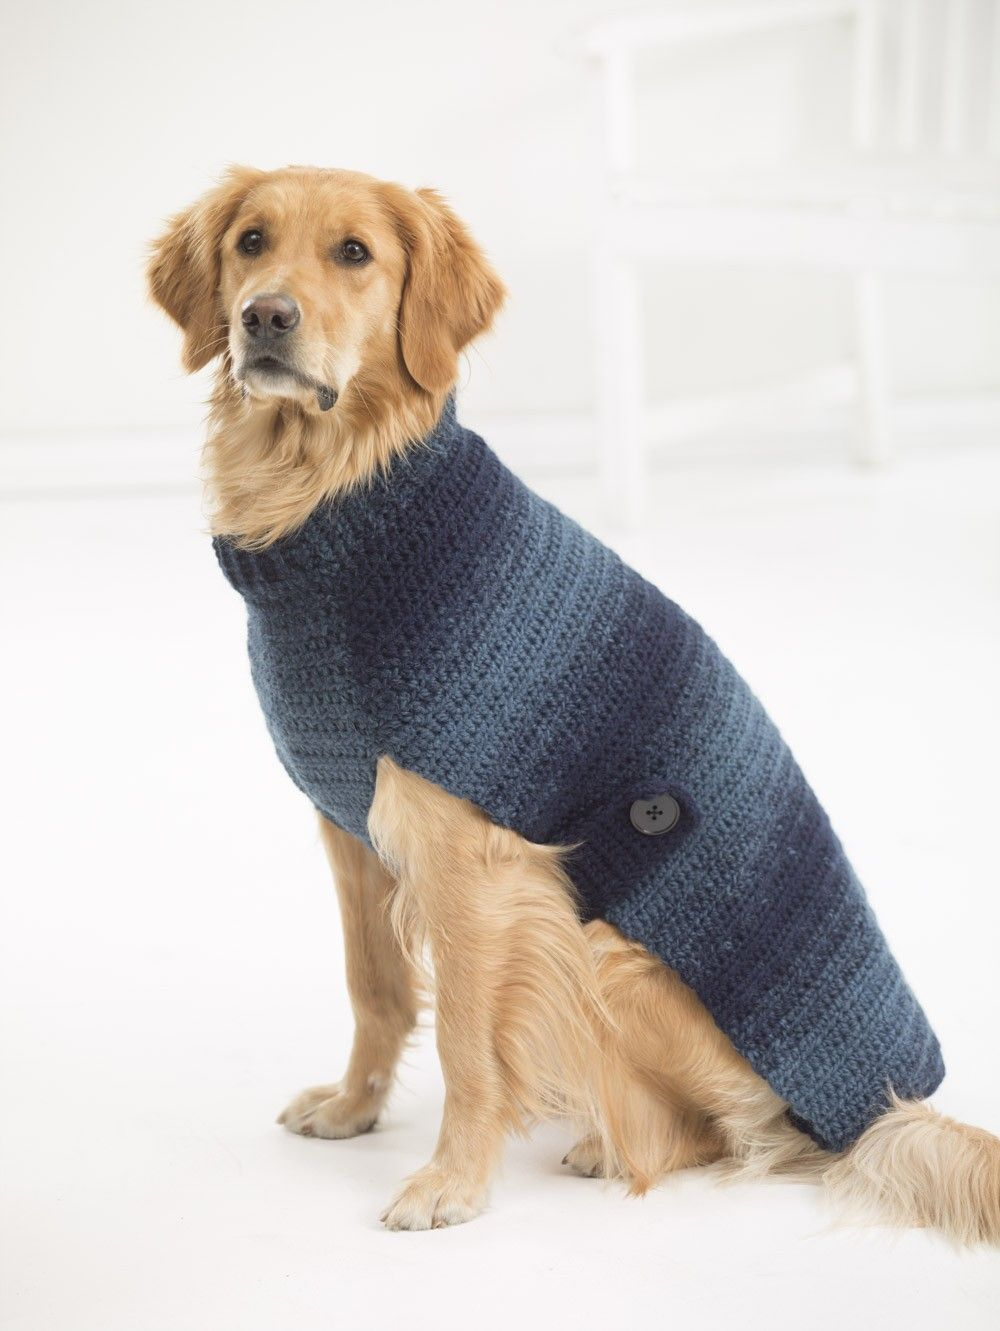 Asta Dog Sweater (Crochet) | Crochet Projects 4 | Pinterest